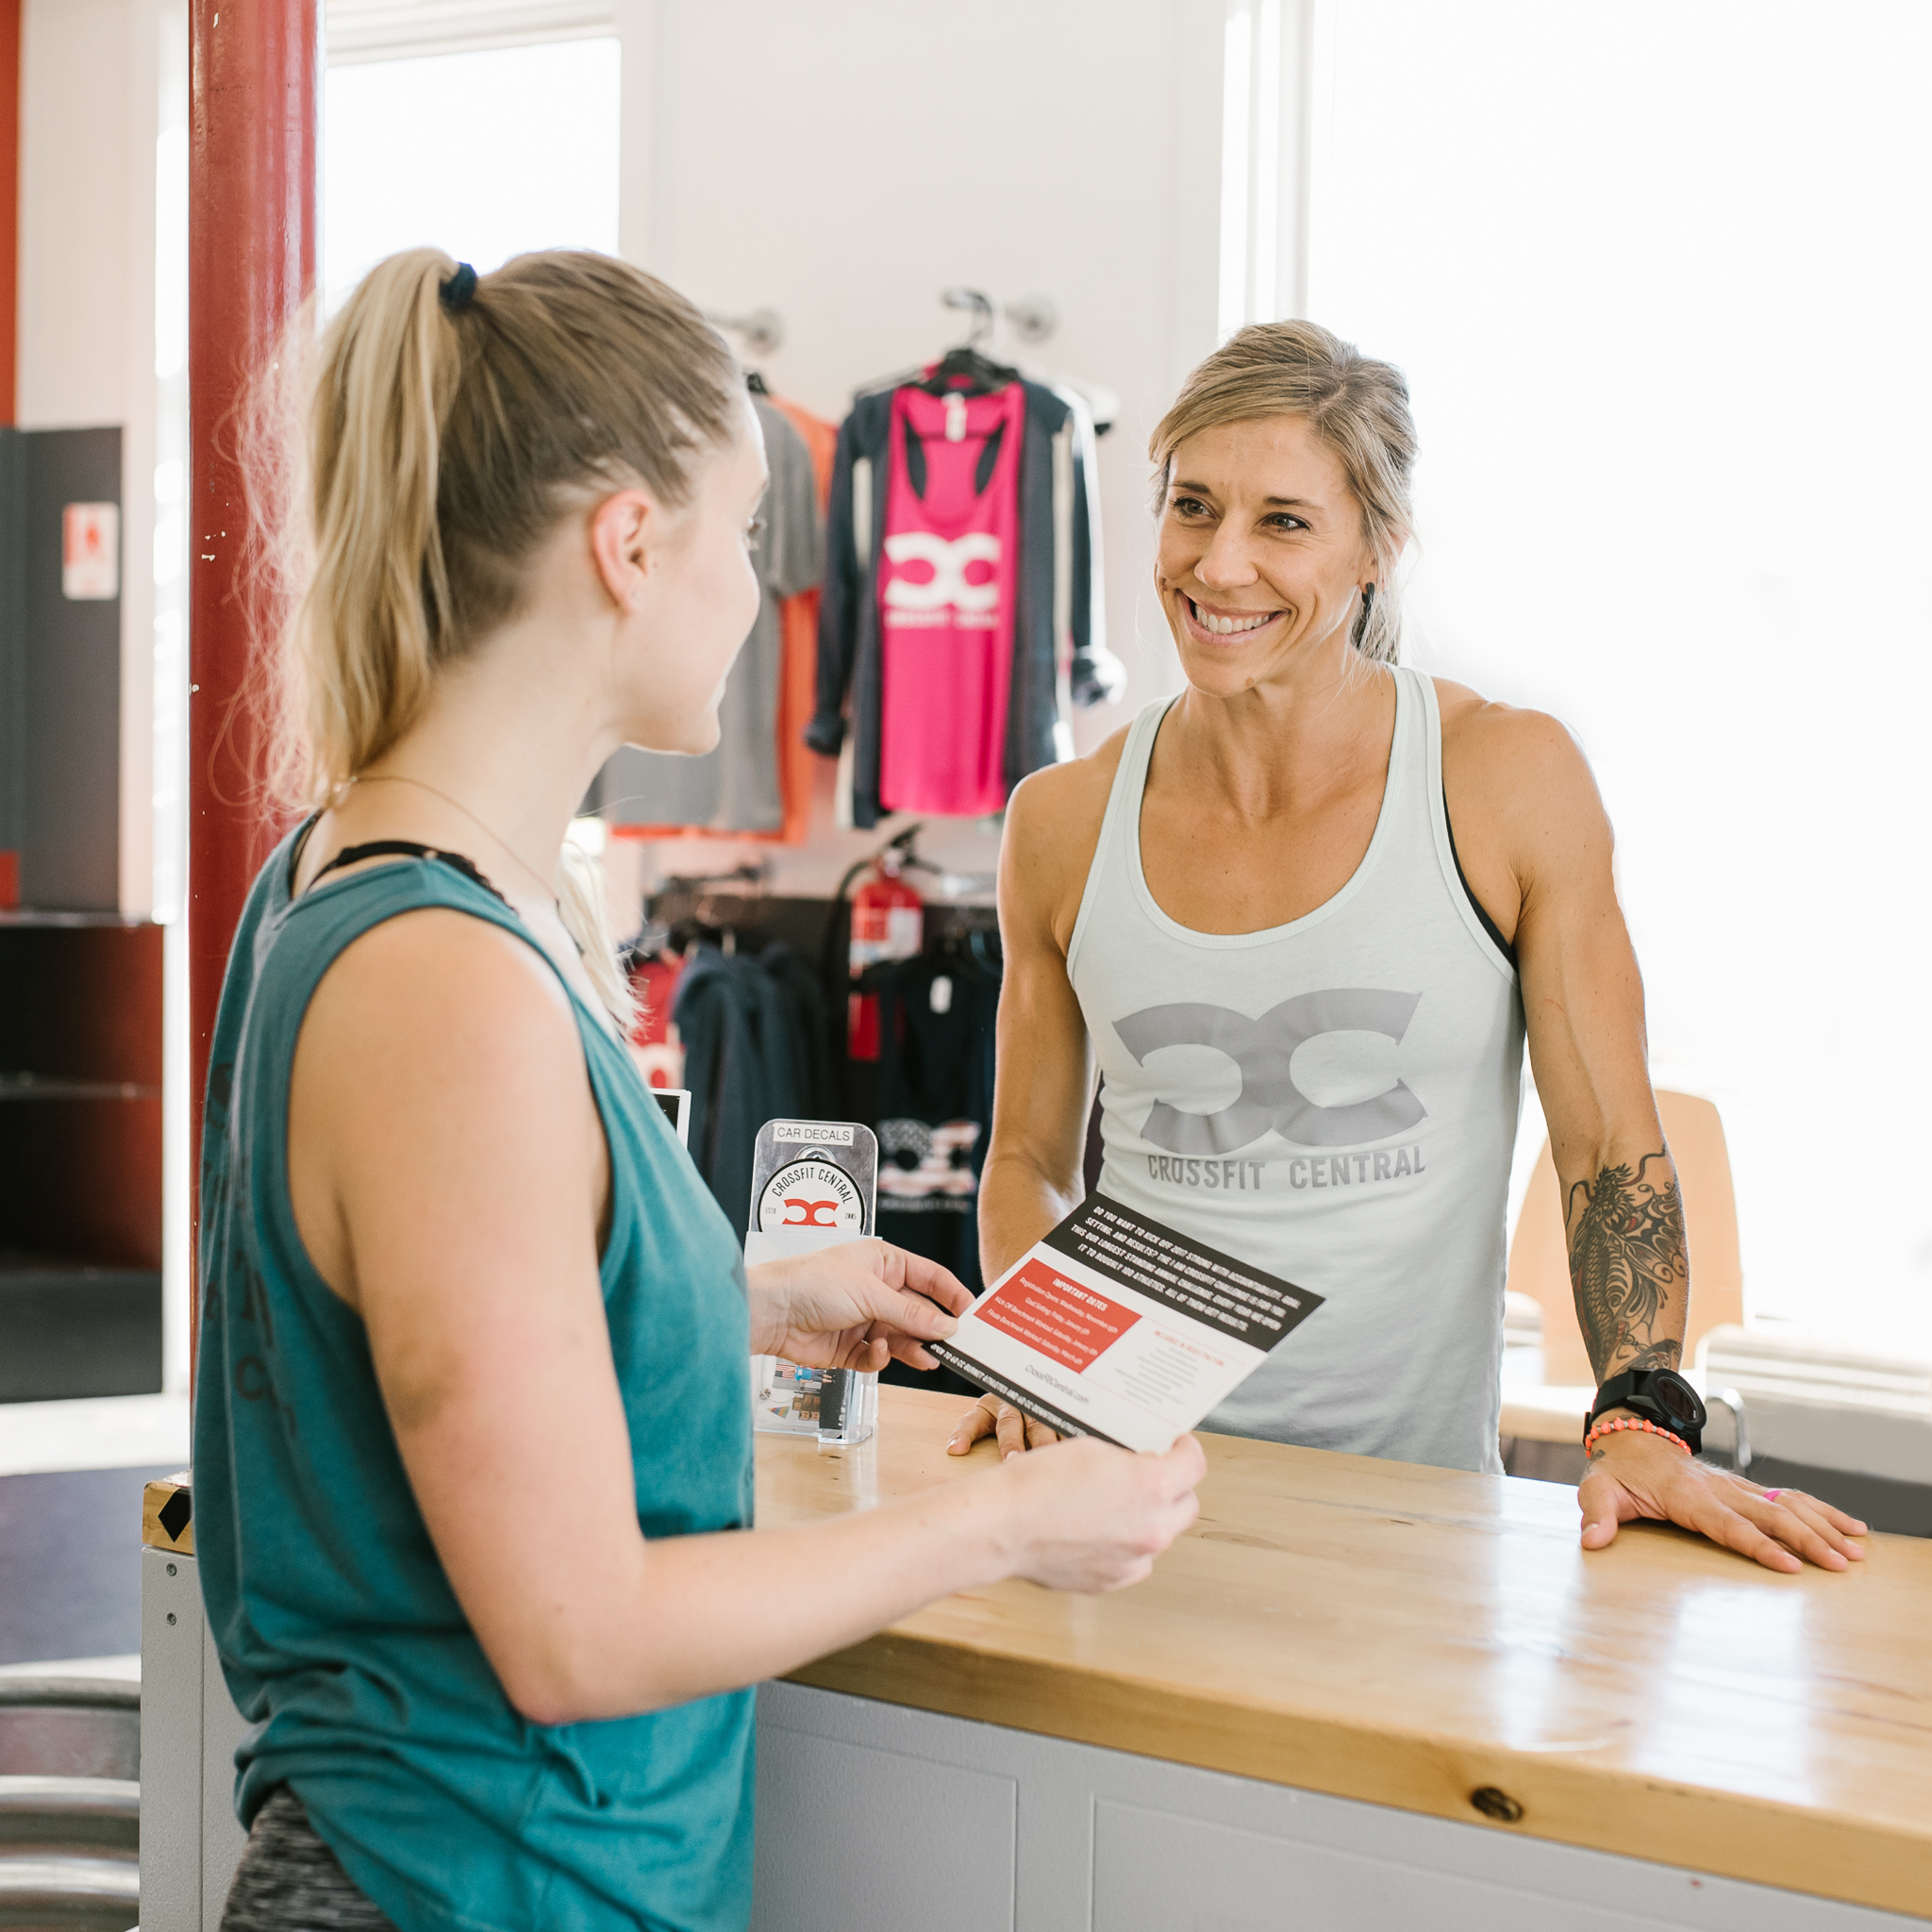 Austin and Round Rock Commercial Photography - Emily Ingalls Photography - Sports and Fitness Photography - CrossFit Central_CrossFit and Weight lifting Photography-4.jpg